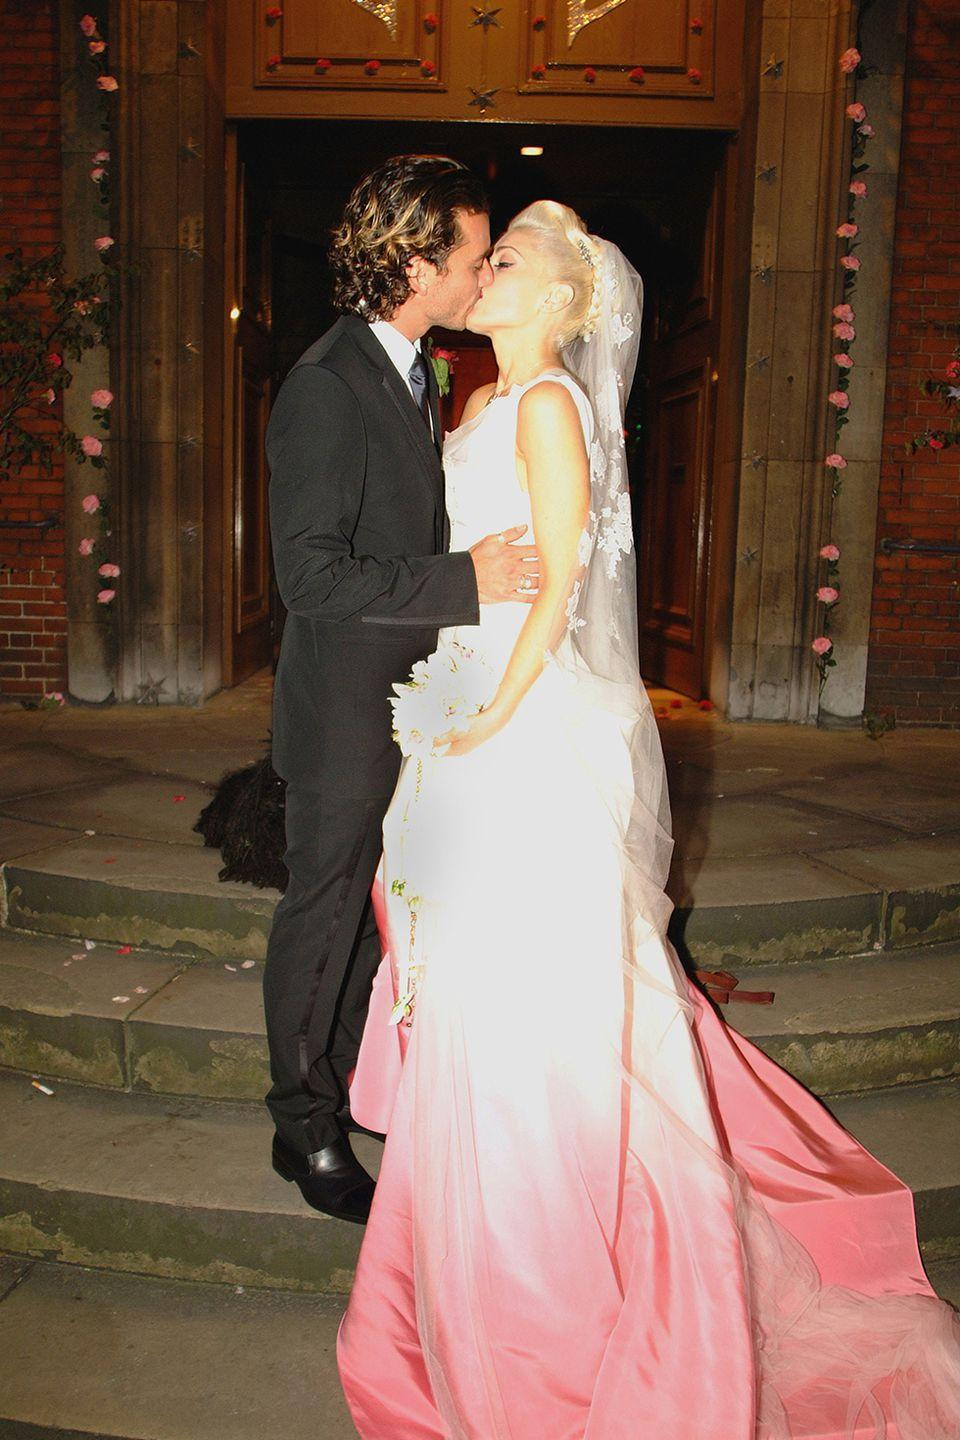 <p>The union of Gwen Stefani and Gavin Rossdale made everyone's '90s alt-rock dreams come true. Designed by John Galliano for Christian Dior, her gorgeous gown was custom dip-dyed and hand-painted in pink.</p>